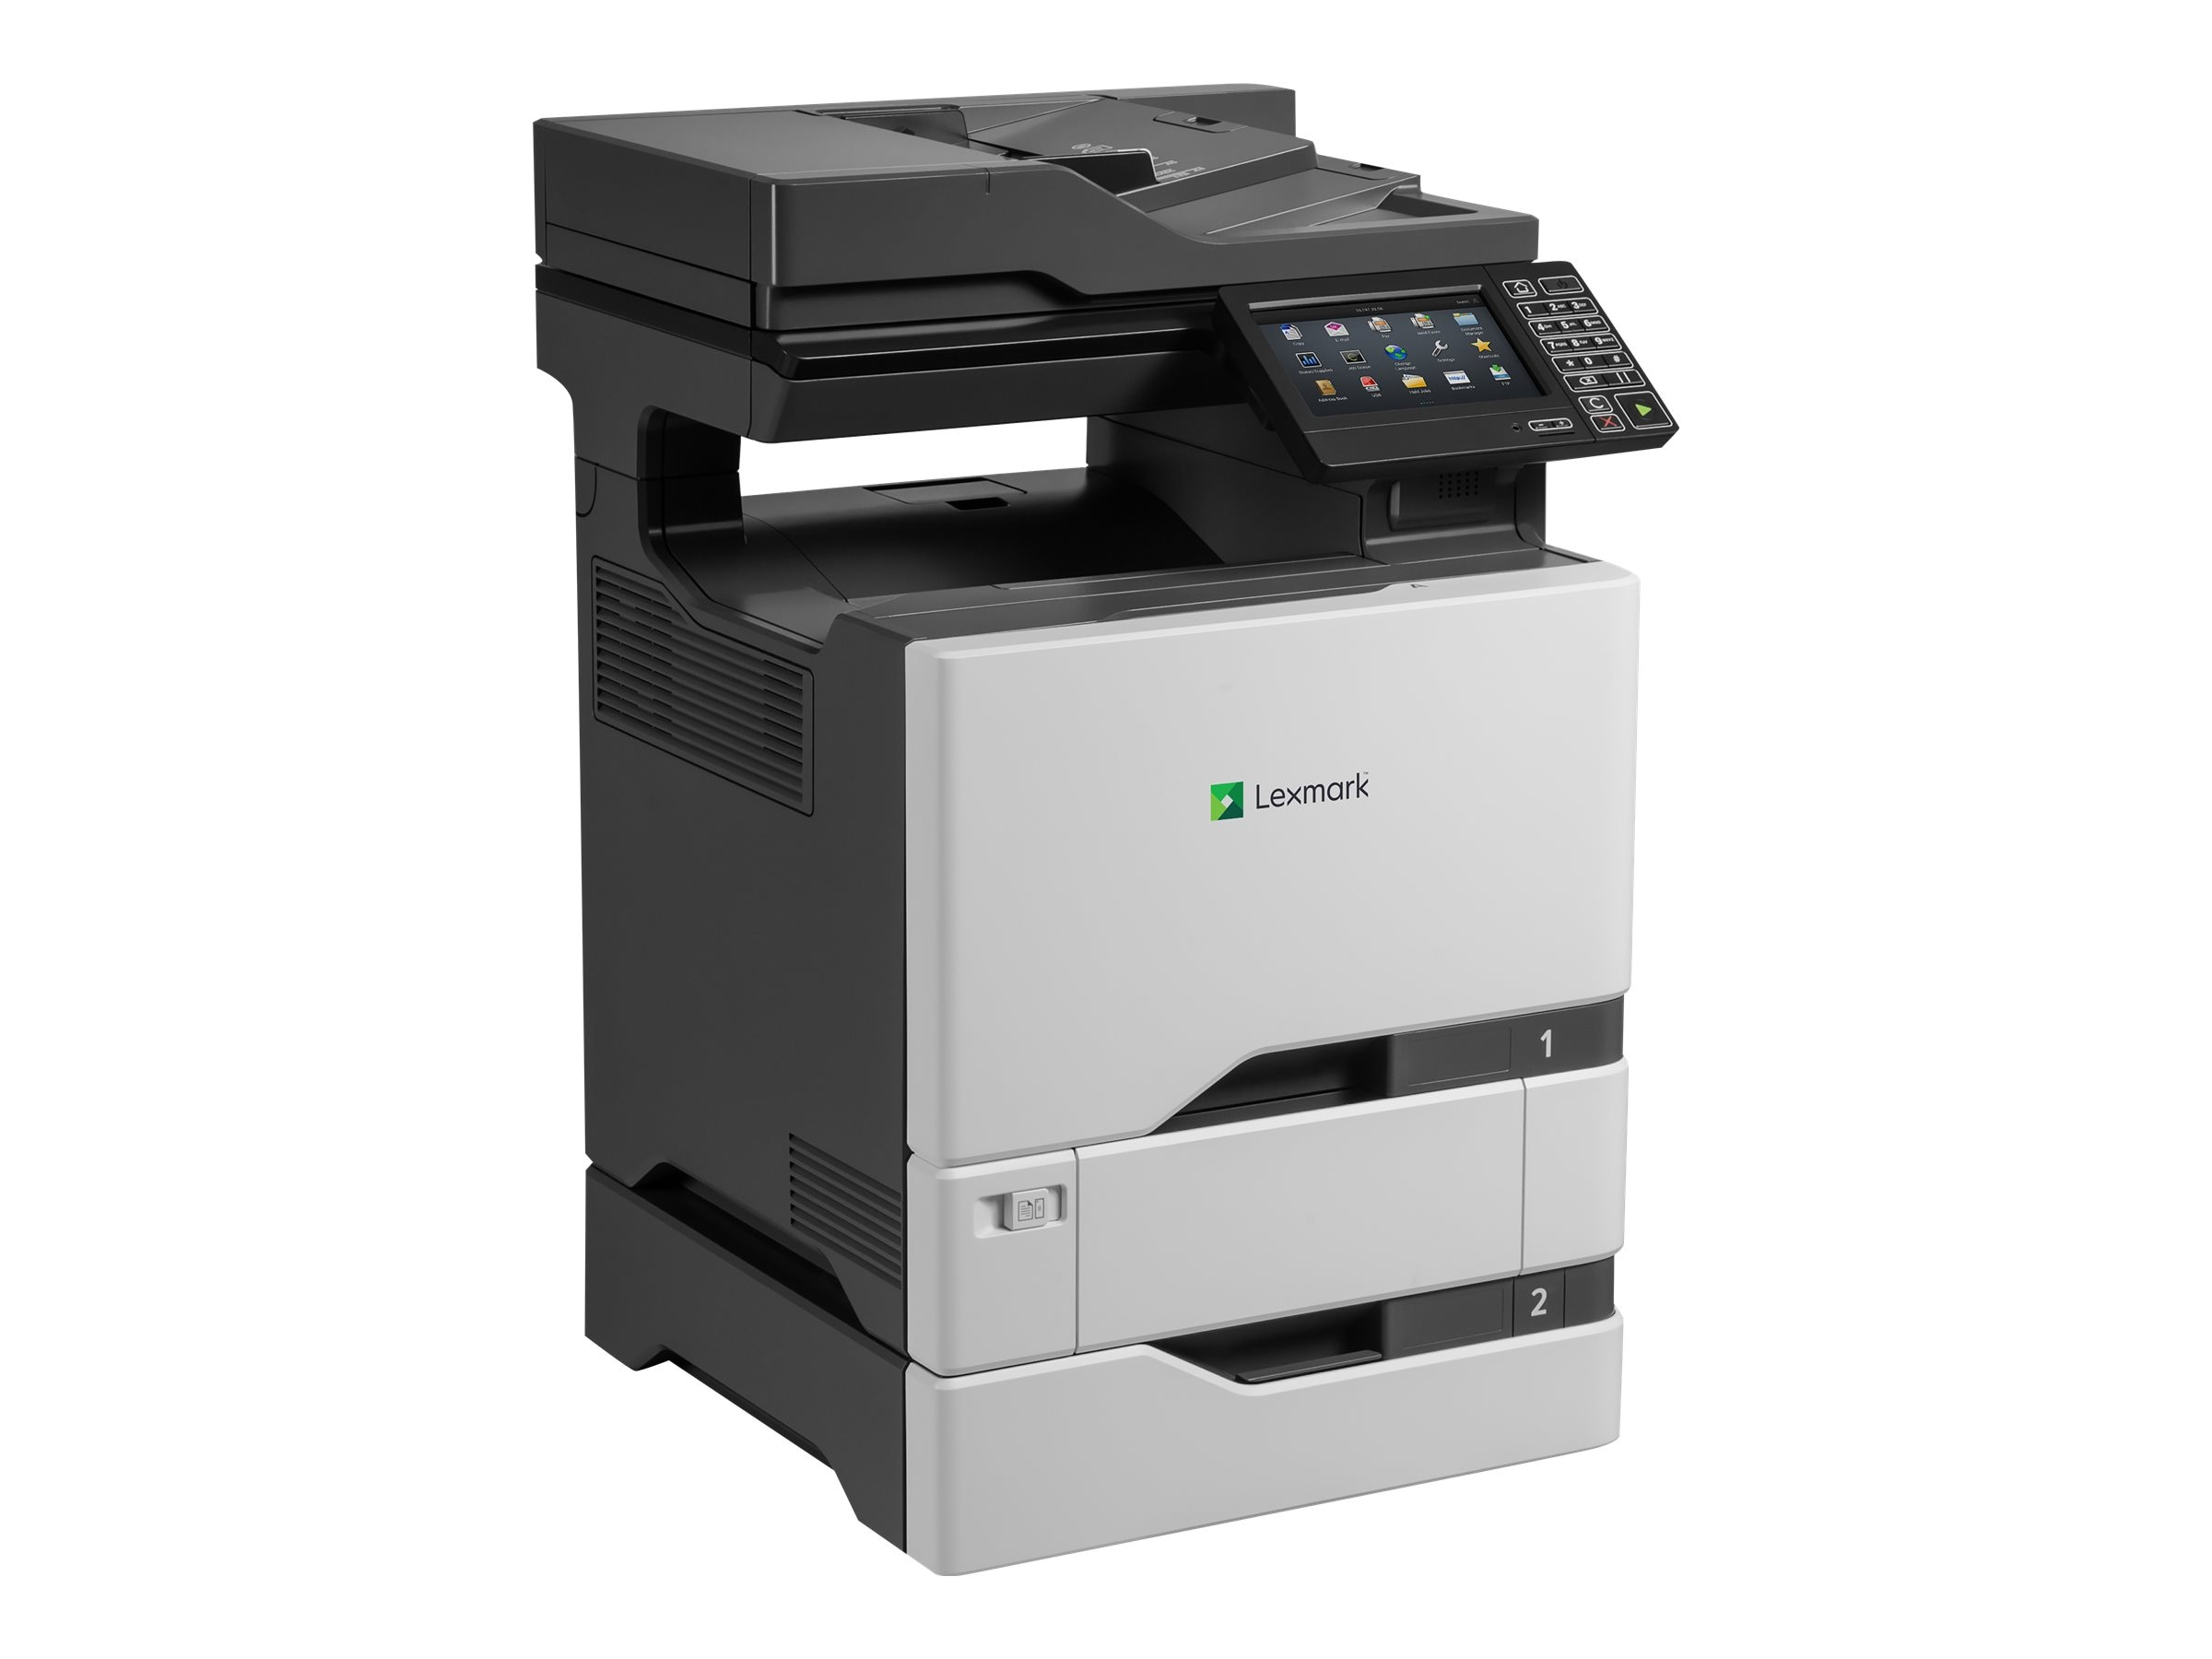 Lexmark CS725dte Color Laser Printer, 40C9001